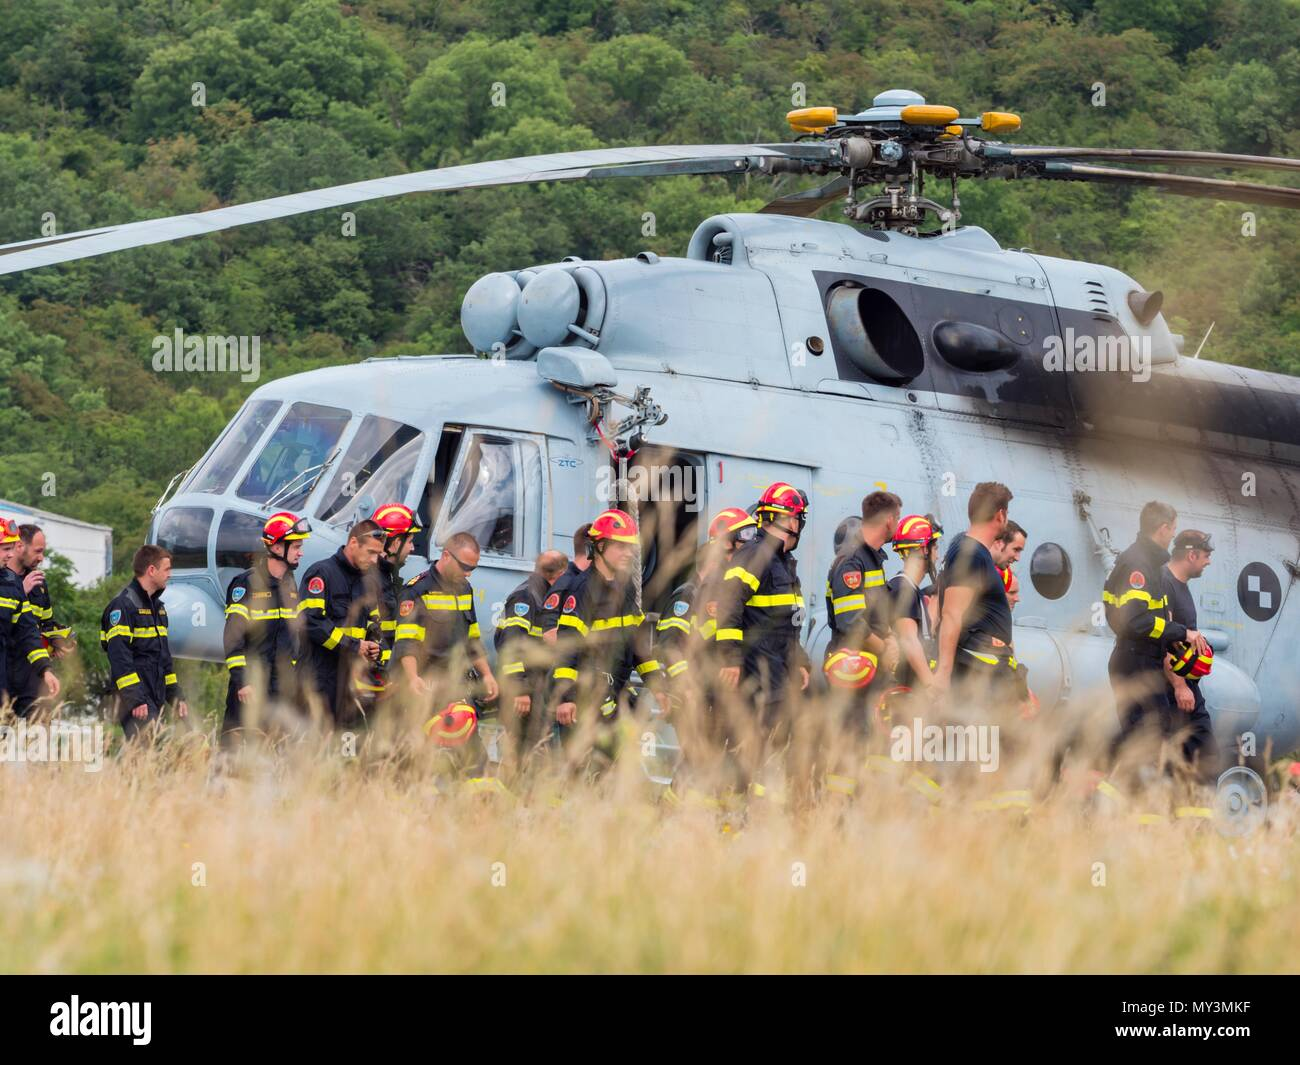 Croatia HRZ Croatian Air Force helicopter Mi-8 Mi8 MTV1 firefighters exercisingStock Photo